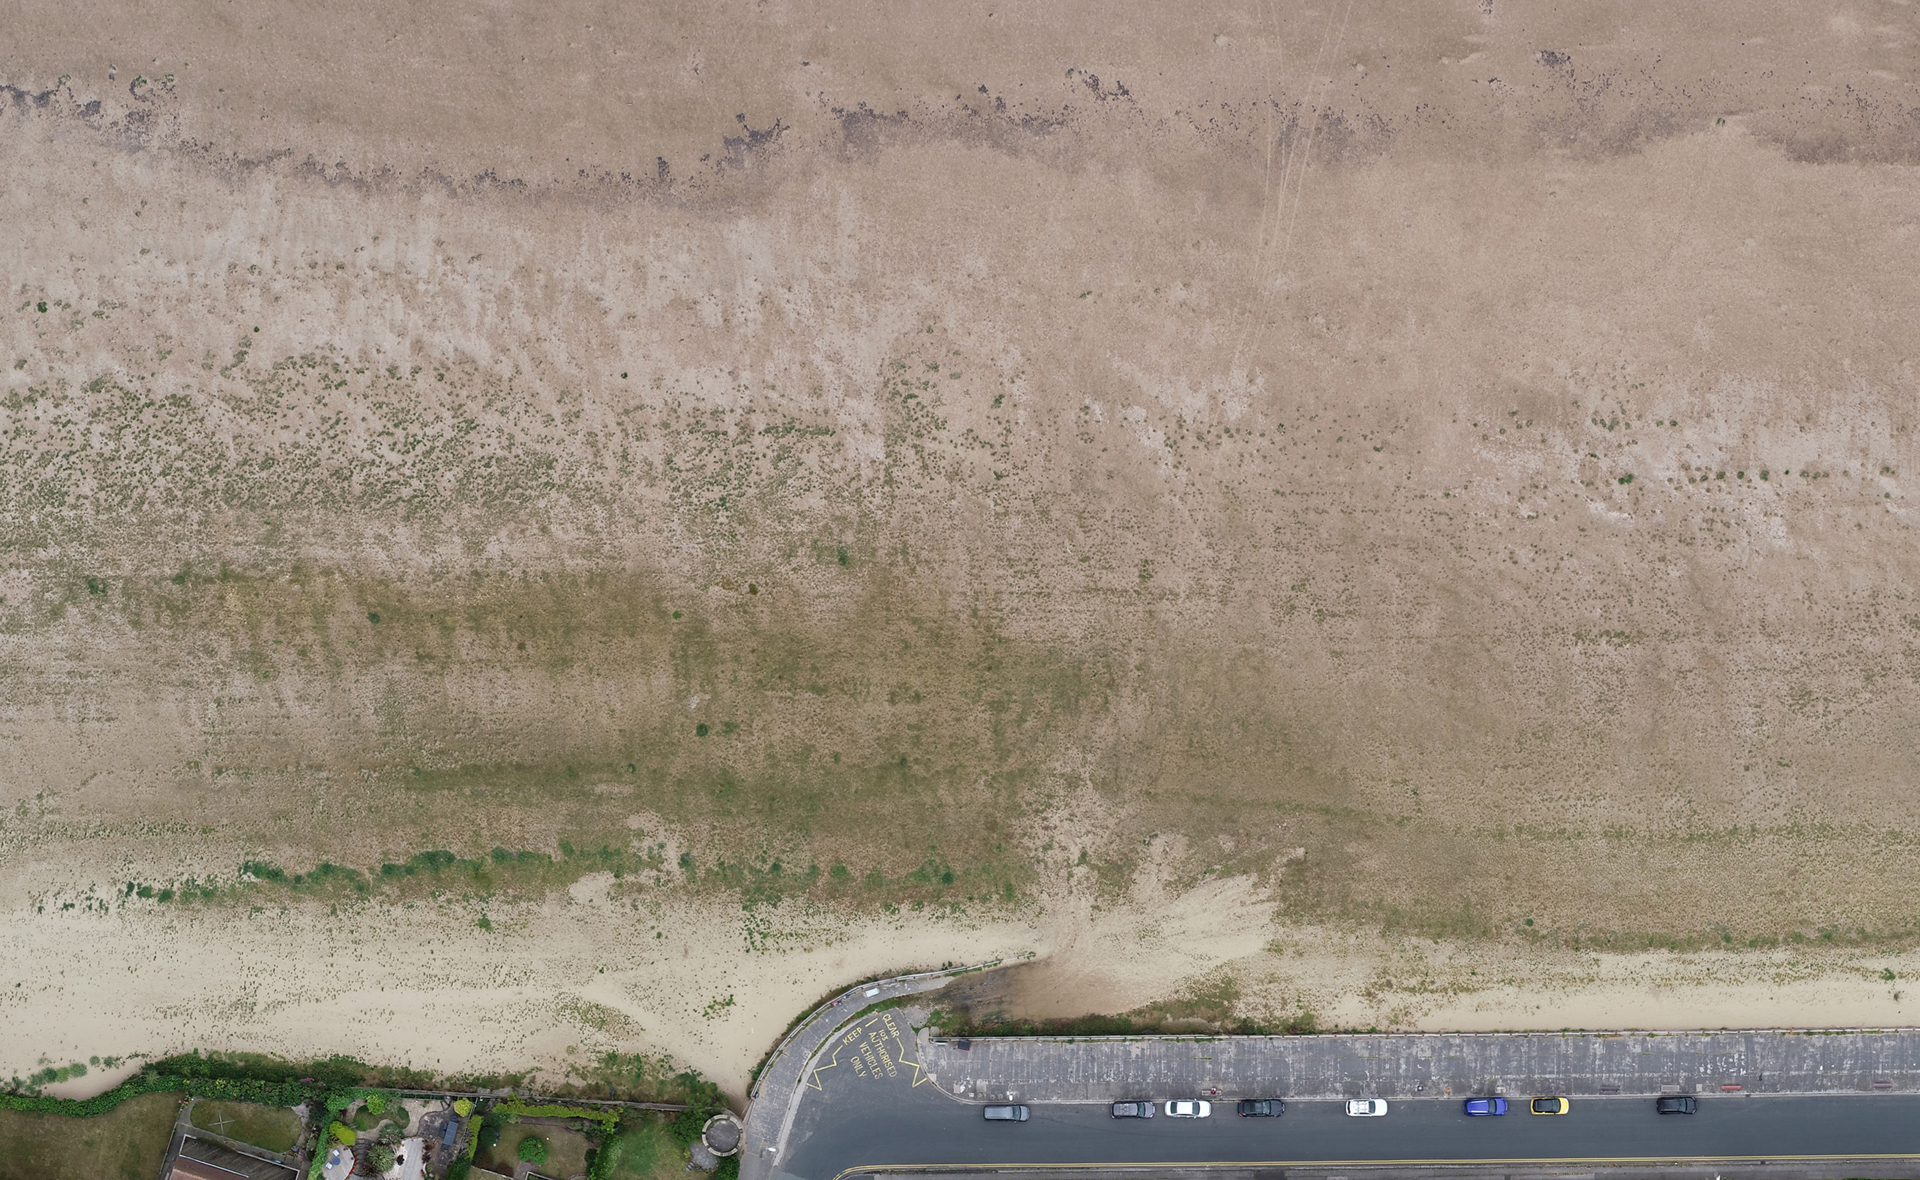 At Kings Gap slipway we can see from above the darker 'plume' where sand is wetter and feeding vegetation.